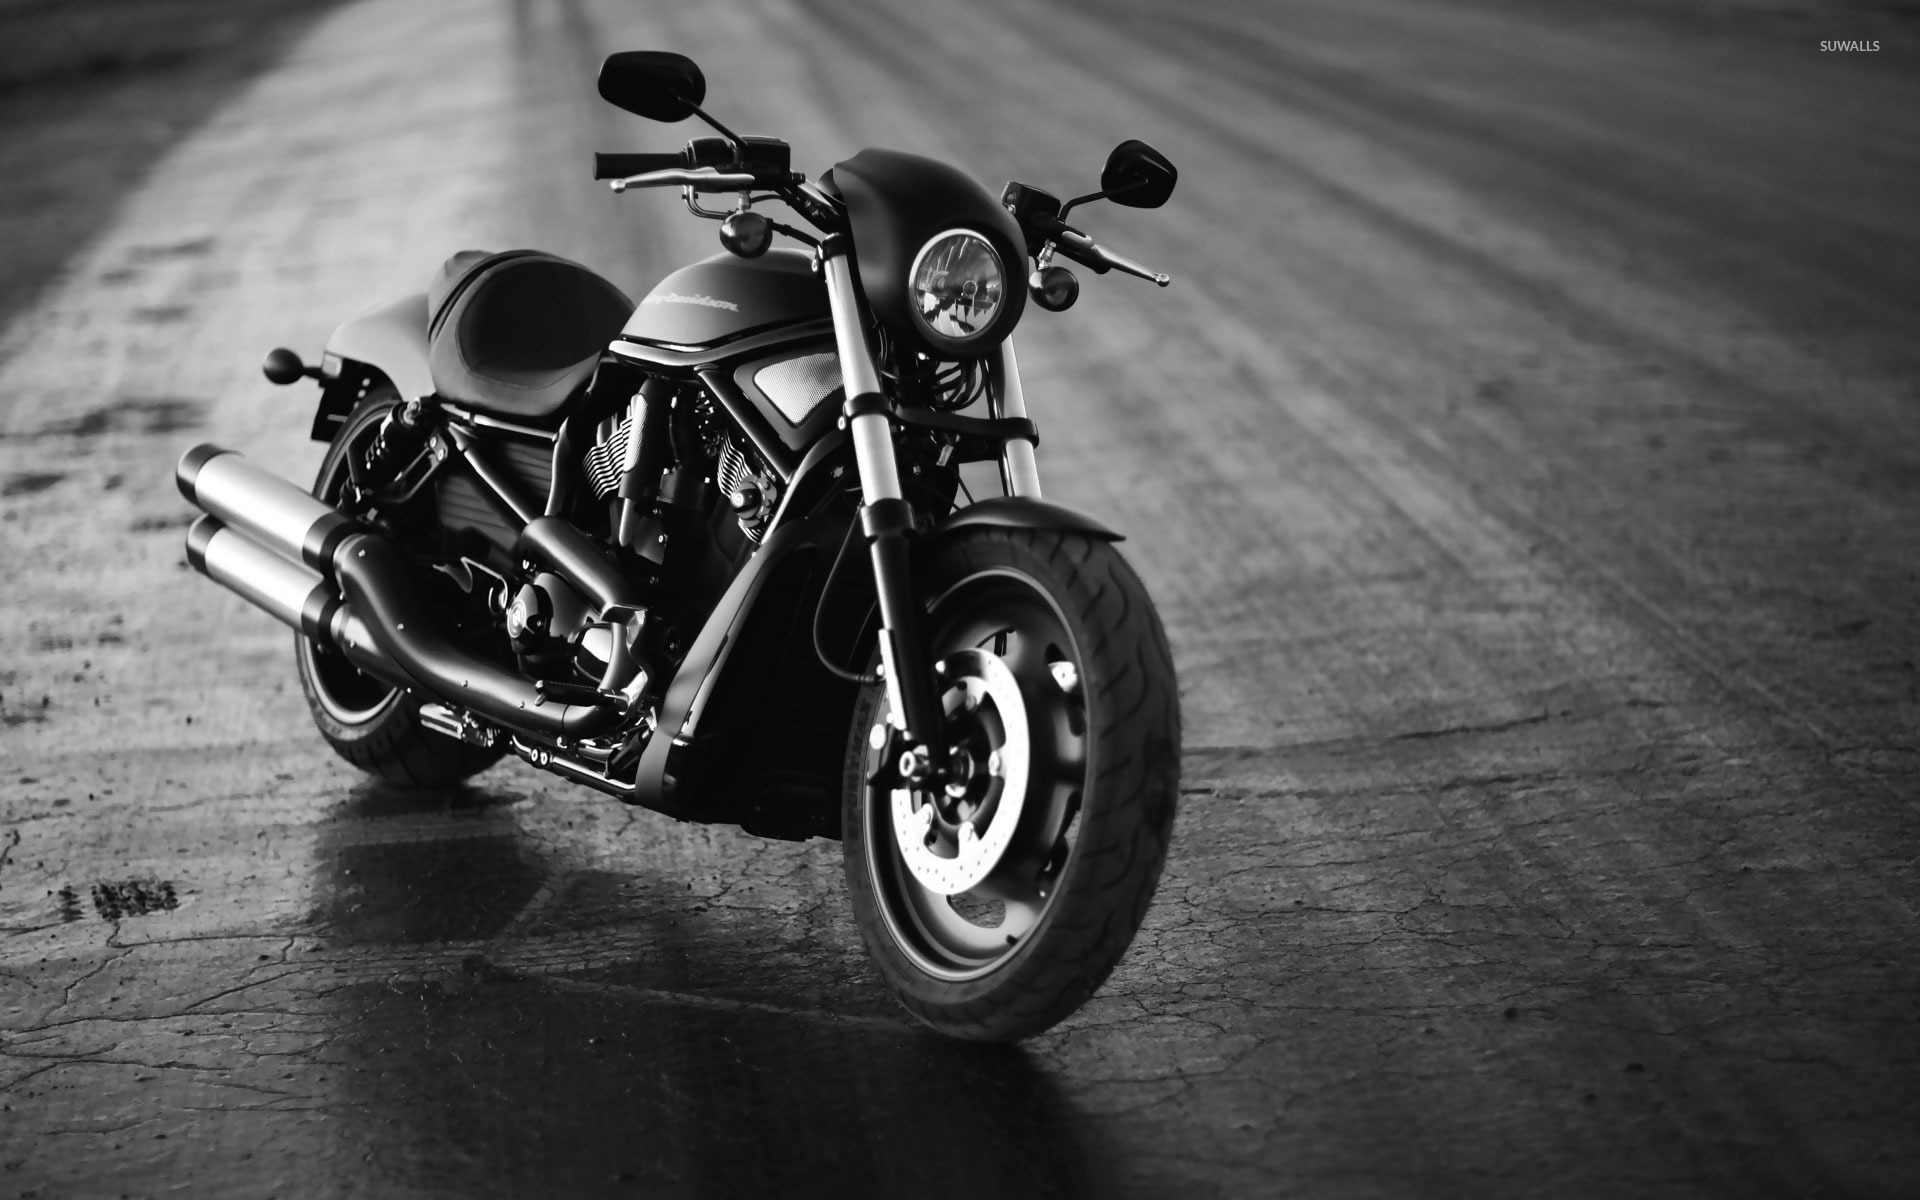 Harley Davidson Vrscdx Night Rod Special Wallpaper Motorcycle Wallpapers 11520